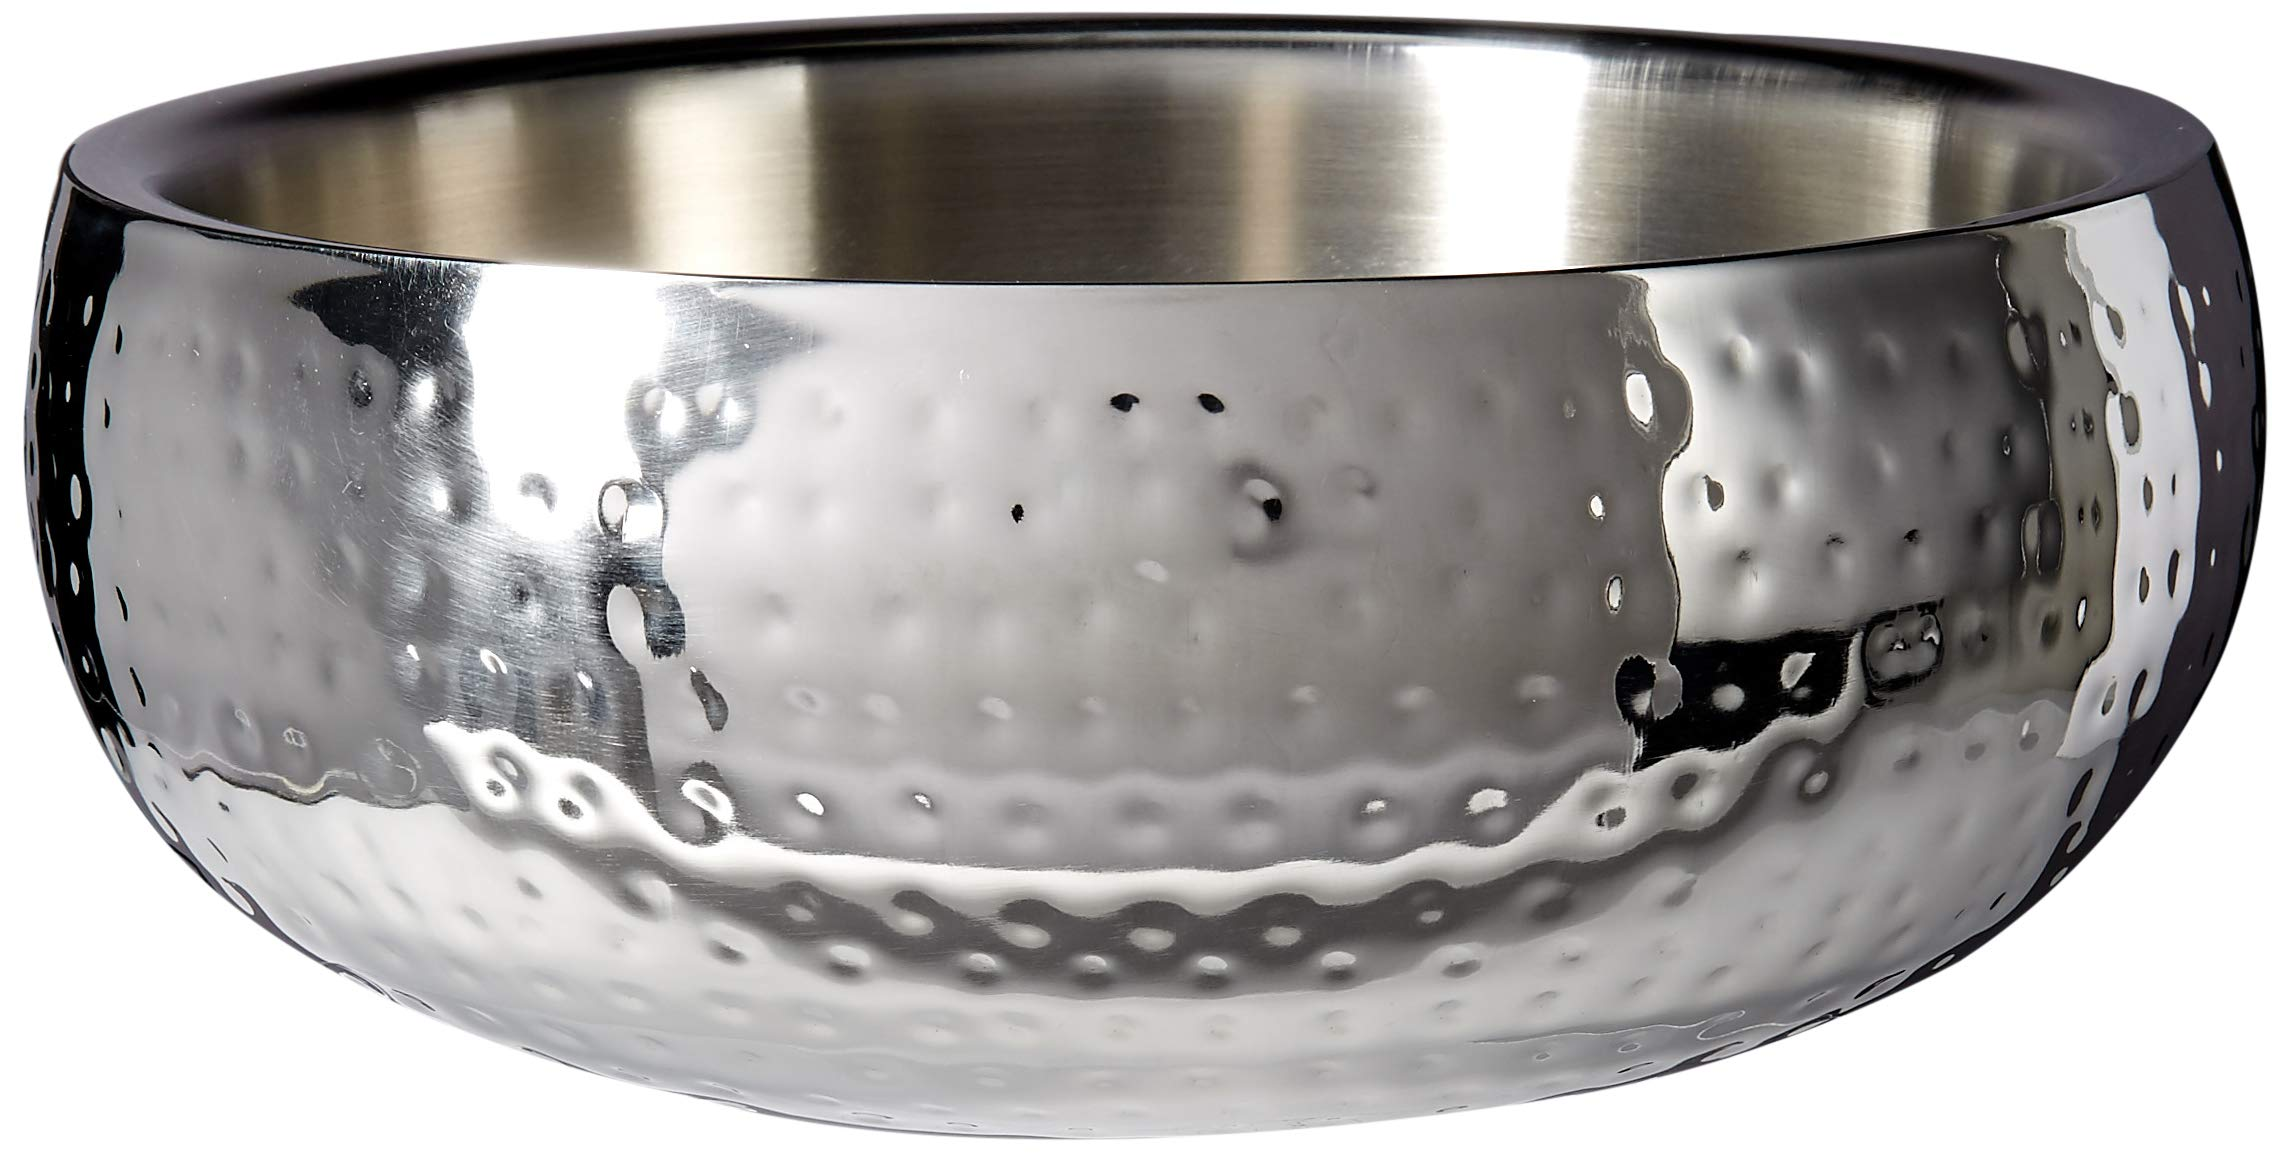 Elegance Hammered 11-Inch Round Stainless Steel Doublewall Serving Bowl